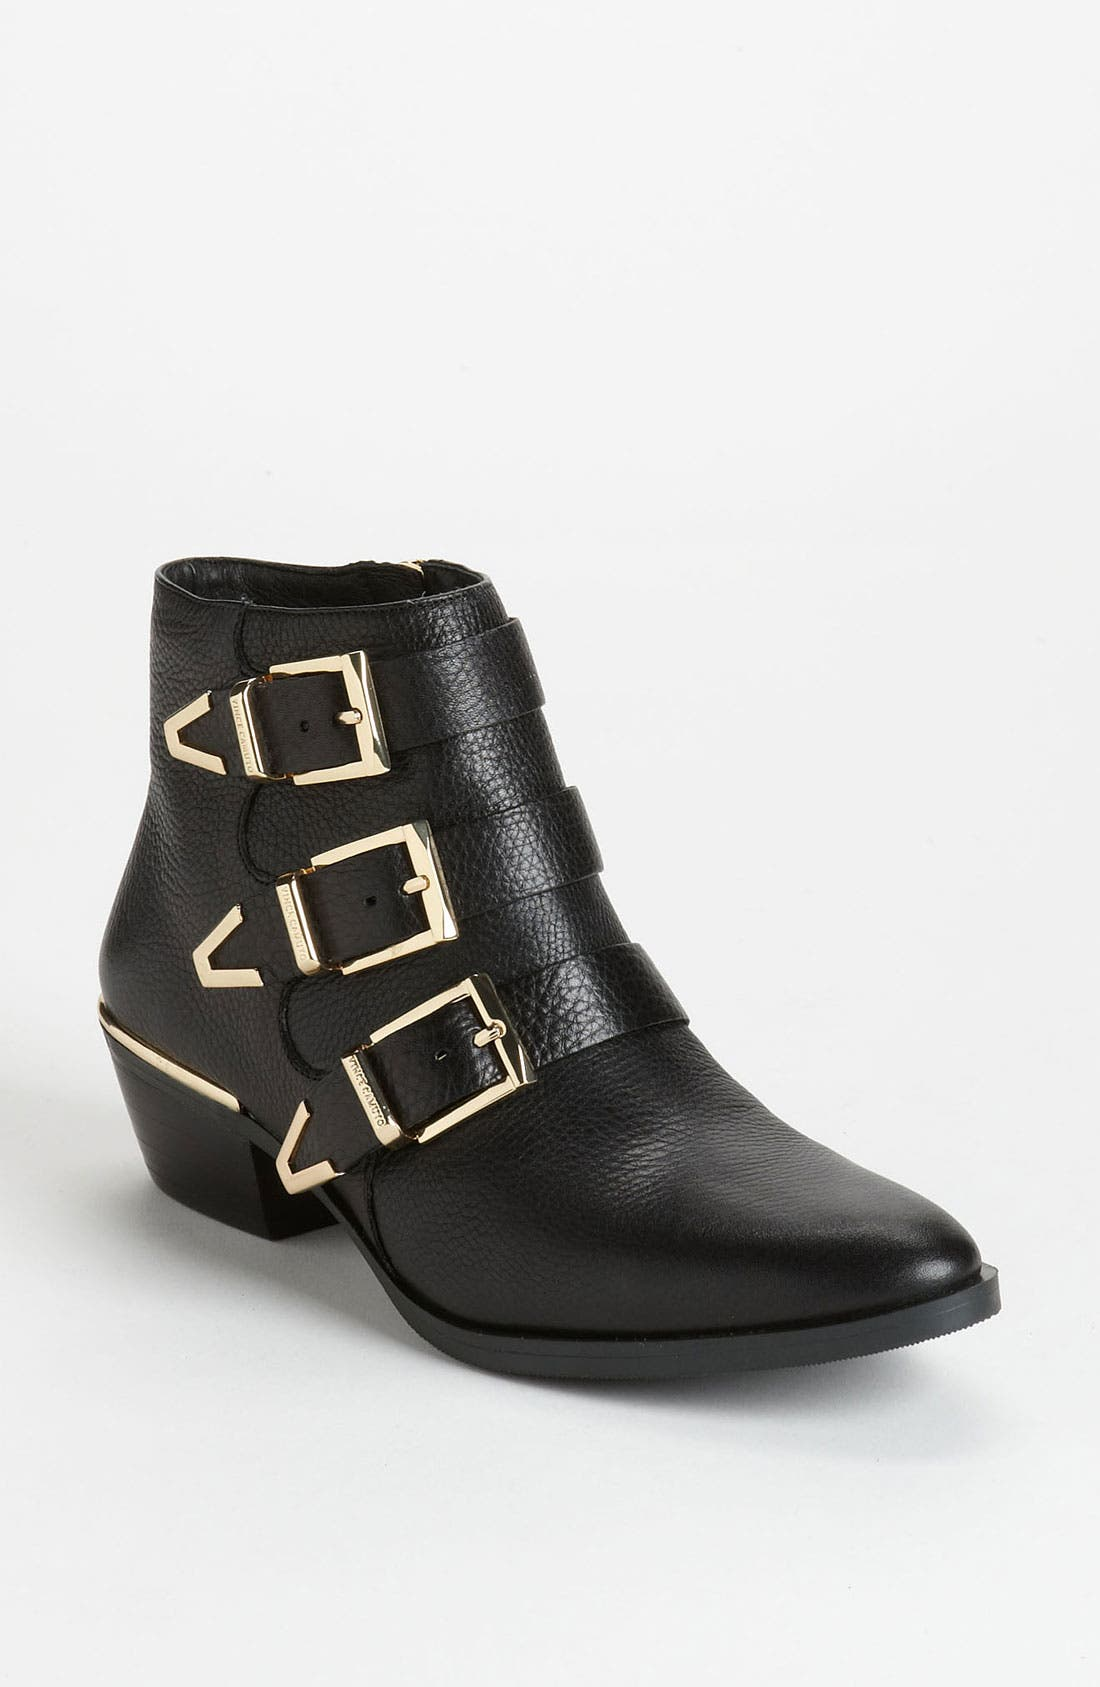 VINCE CAMUTO, 'Tipper' Boot, Main thumbnail 1, color, 002